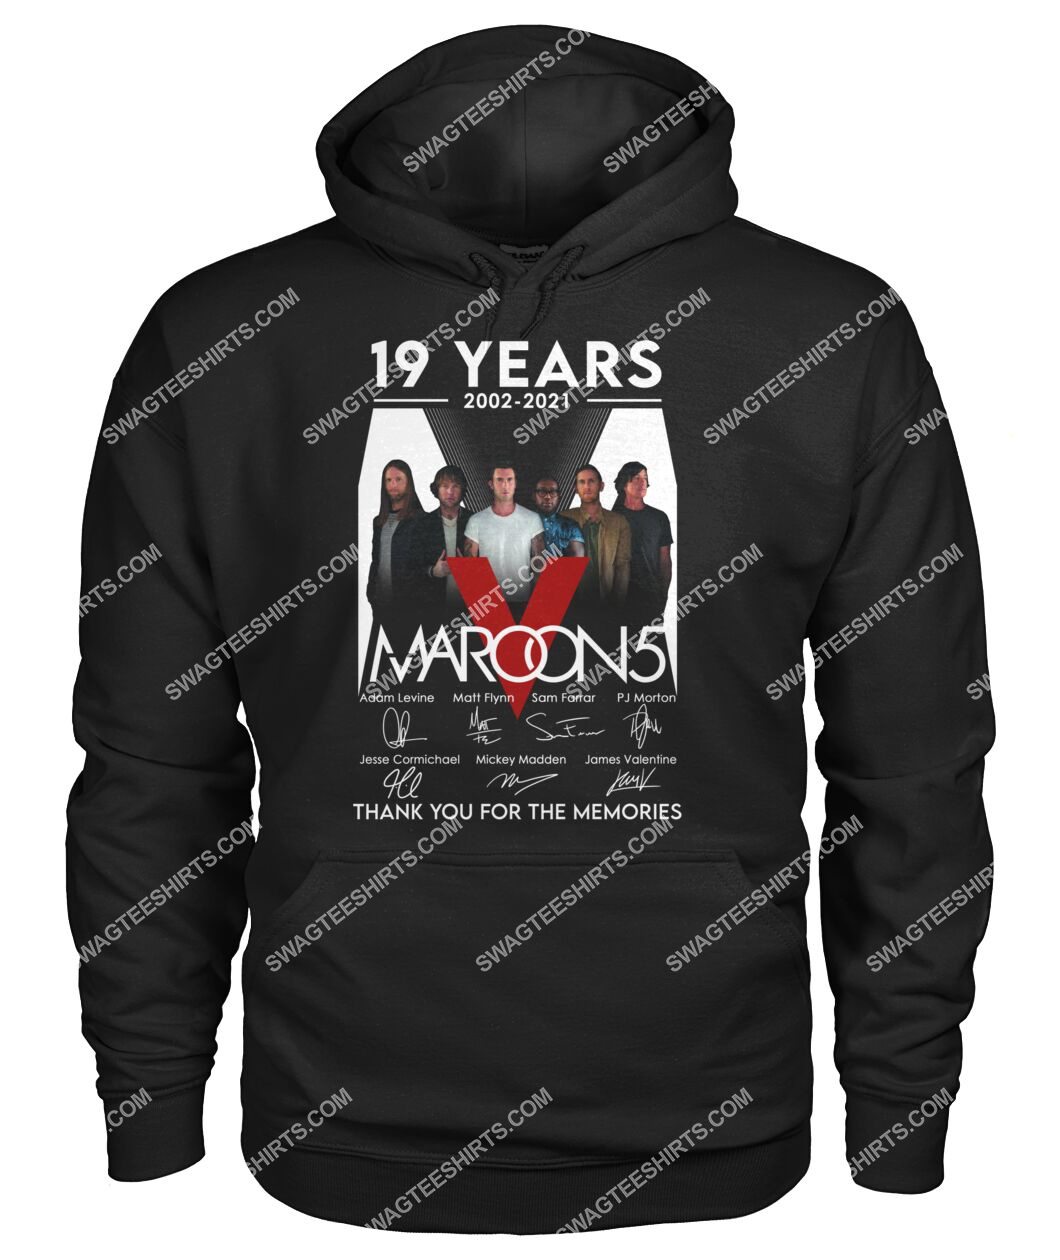 maroon 5 19 years thank you for memories signature hoodie 1